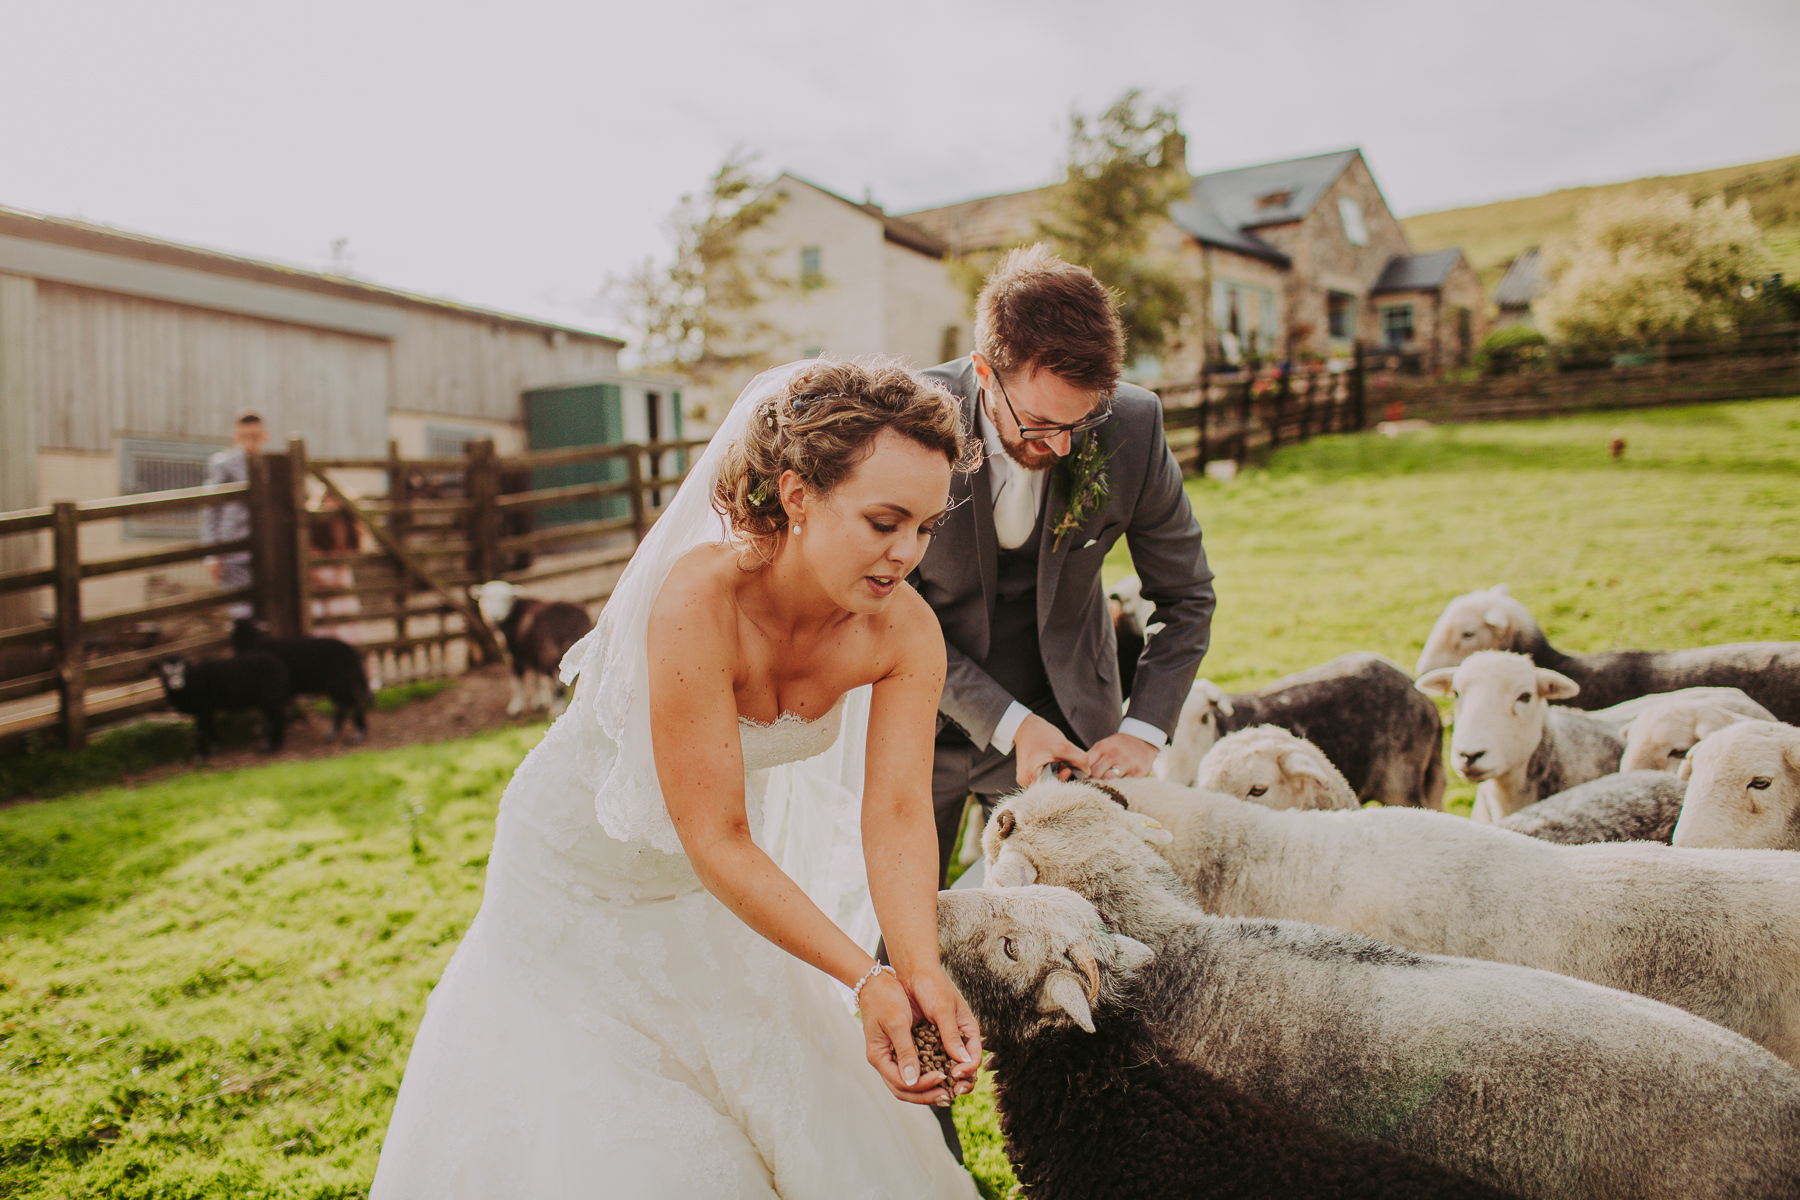 Natalie & Will | County Durham Wedding 289